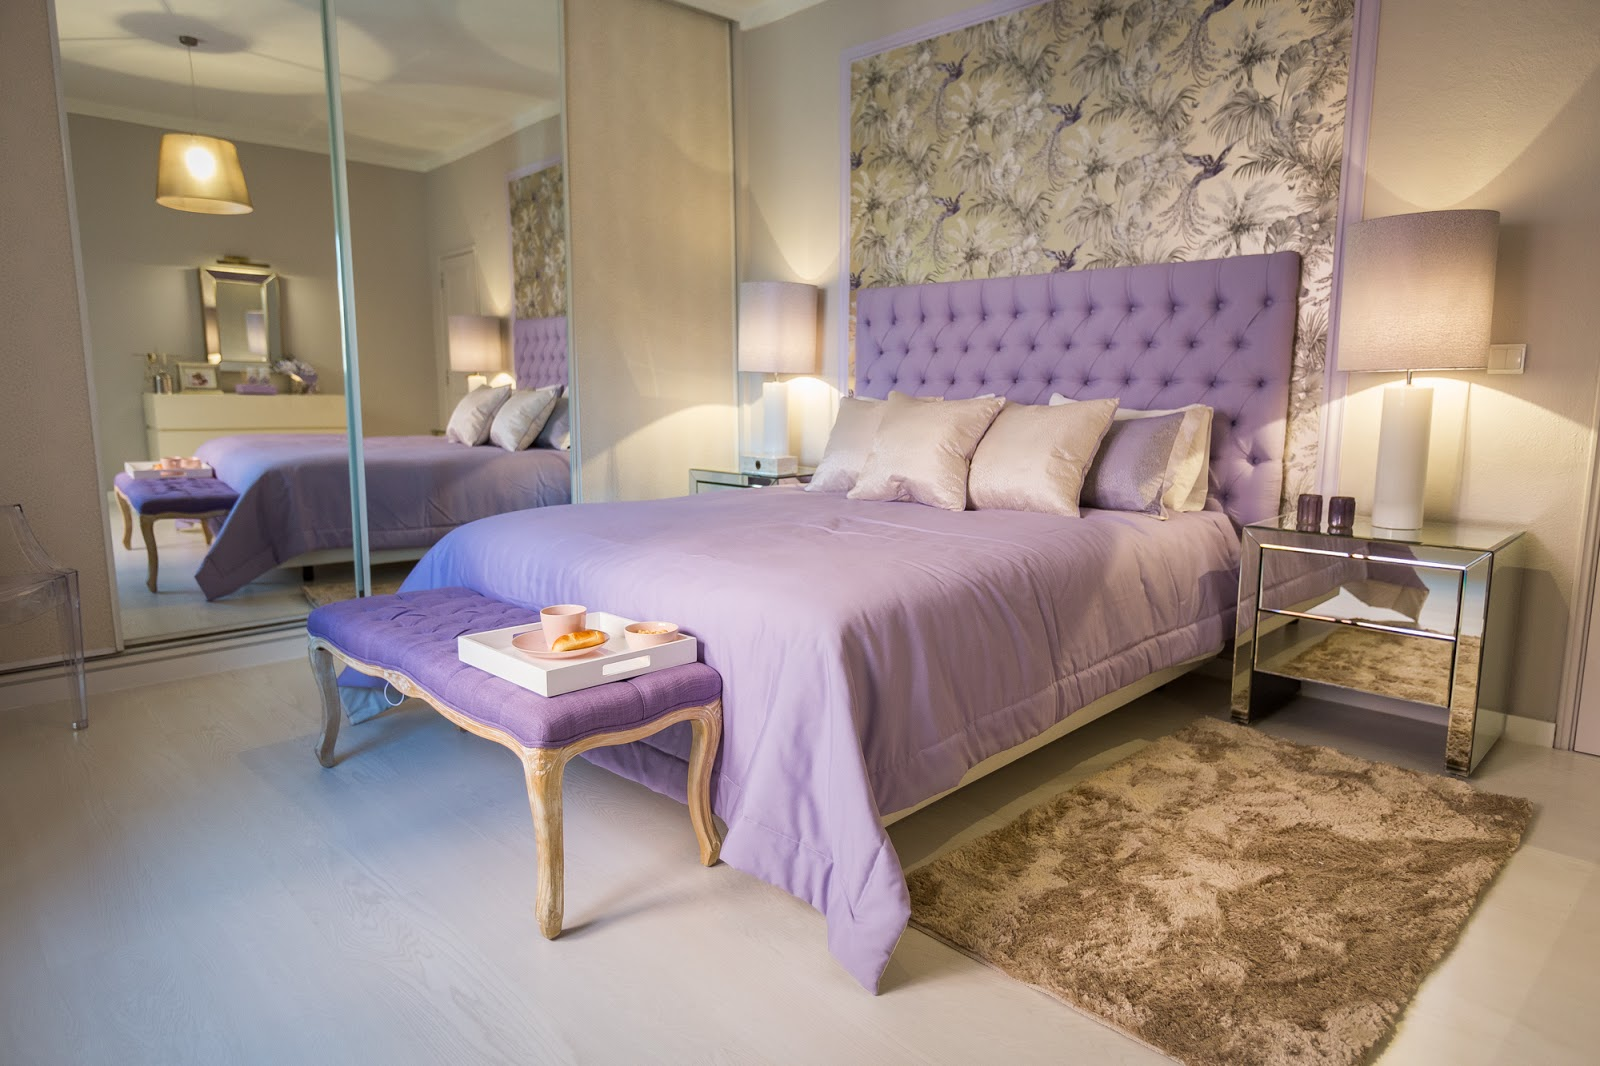 Home-Styling   Ana Antunes: Querido Mudei a casa - Before ...